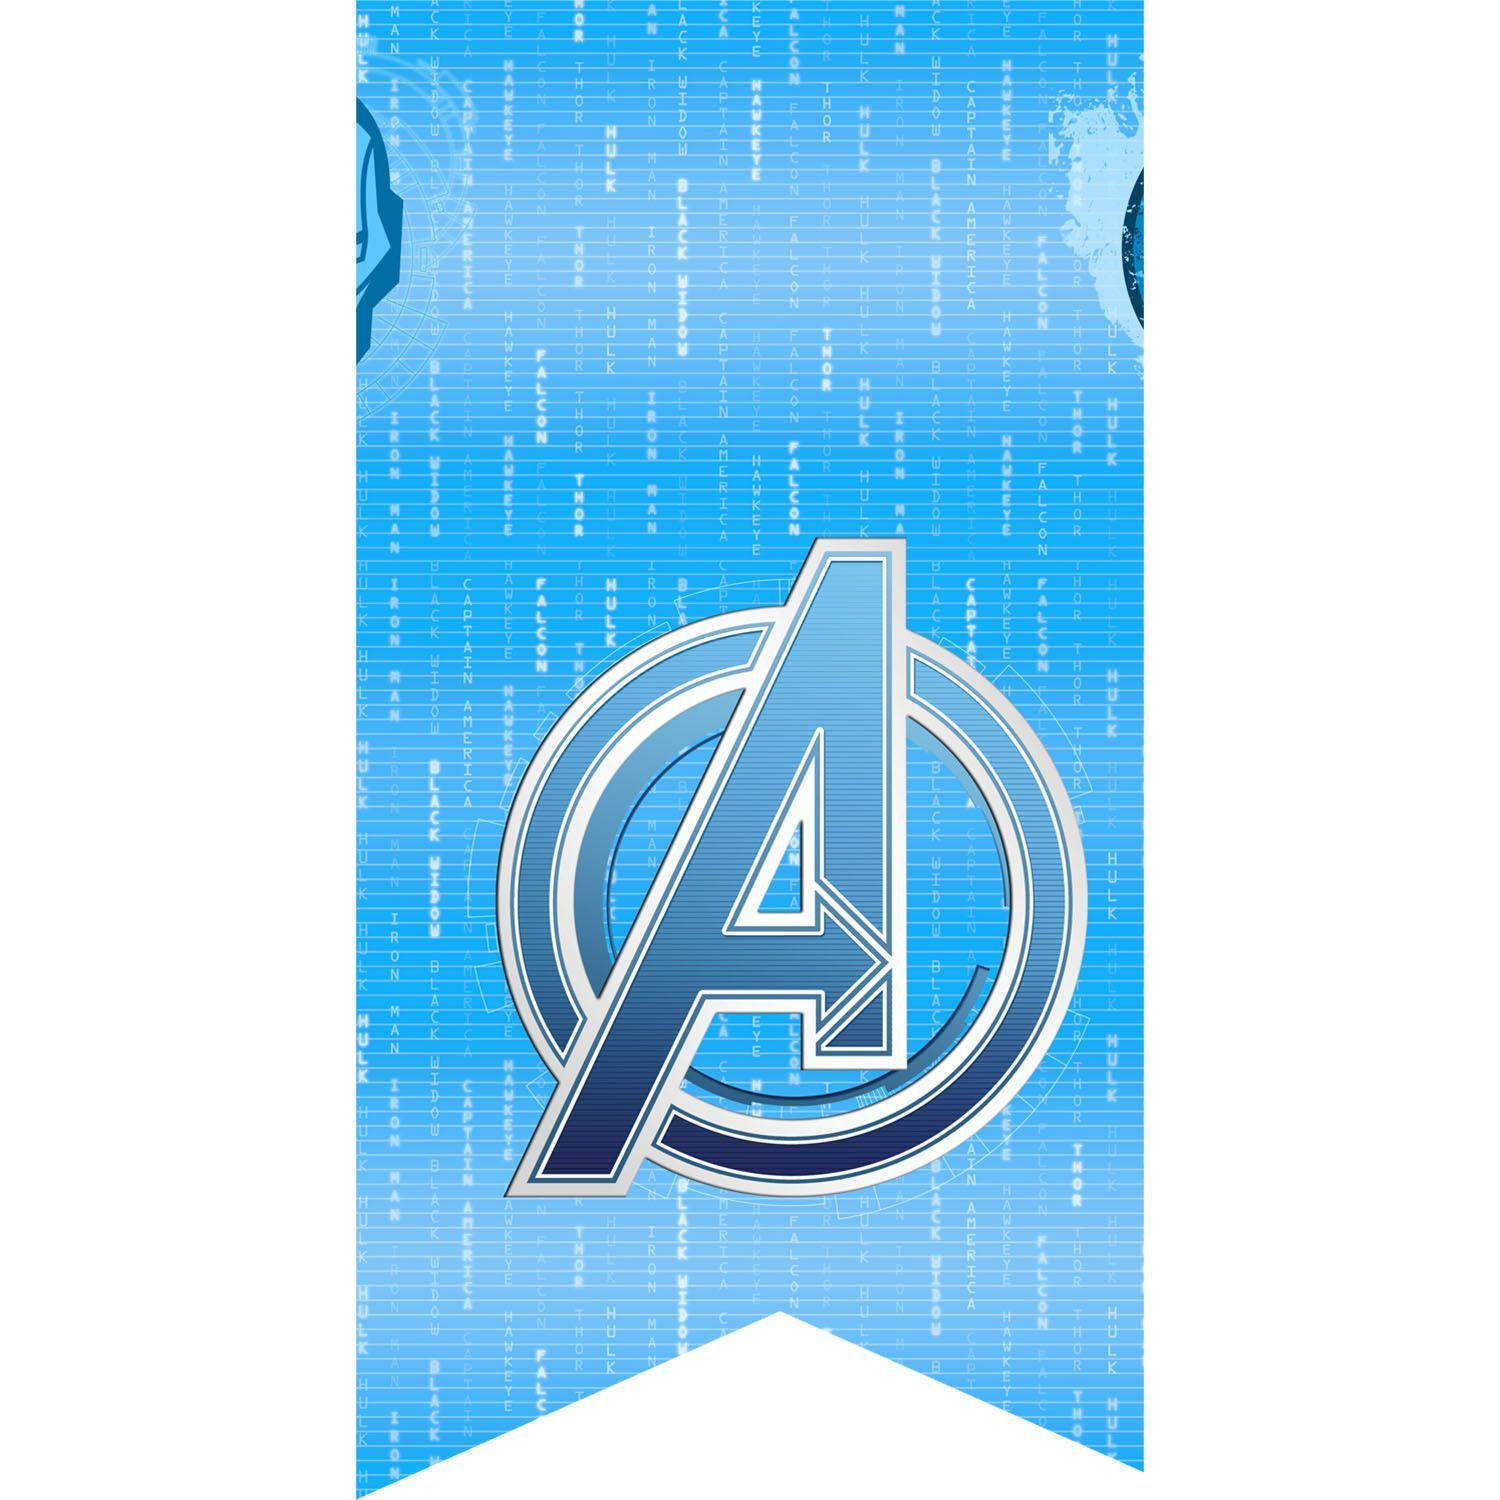 Avengers Assemble Party Table Cover $7.99 (includes Free U.S. Shipping)